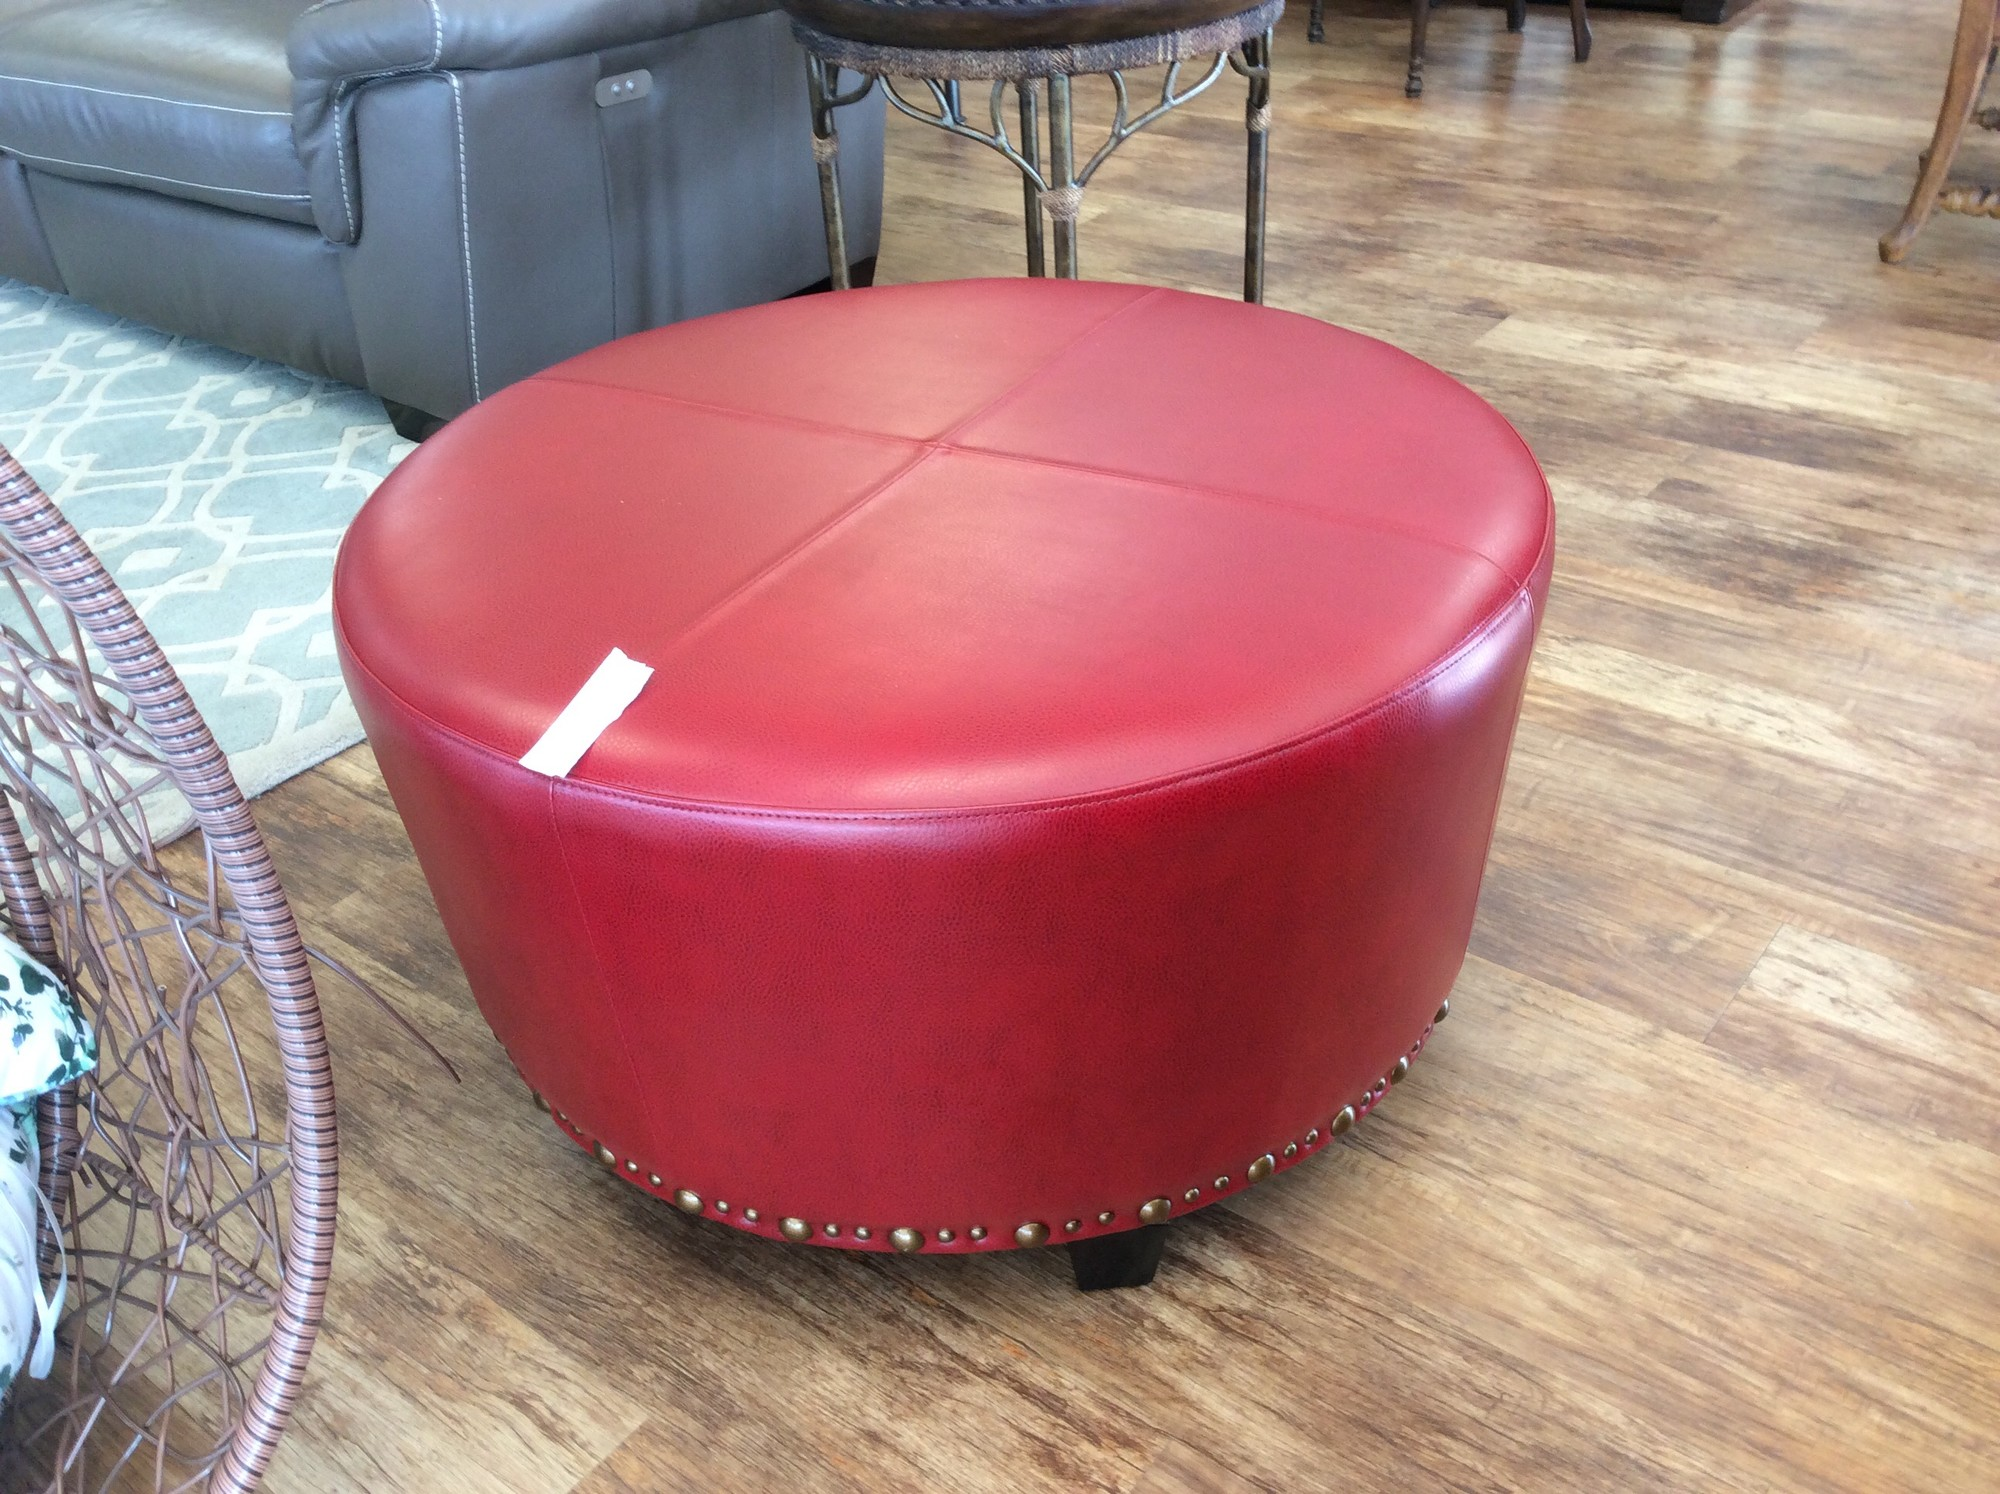 Well, now, isn't this cute! If you have a room in need of a slash of color, perhaps this piece is for you. It features pretty red pleather upholstery, as well as 2 sizes of bronze nailhead accents around the bottom.